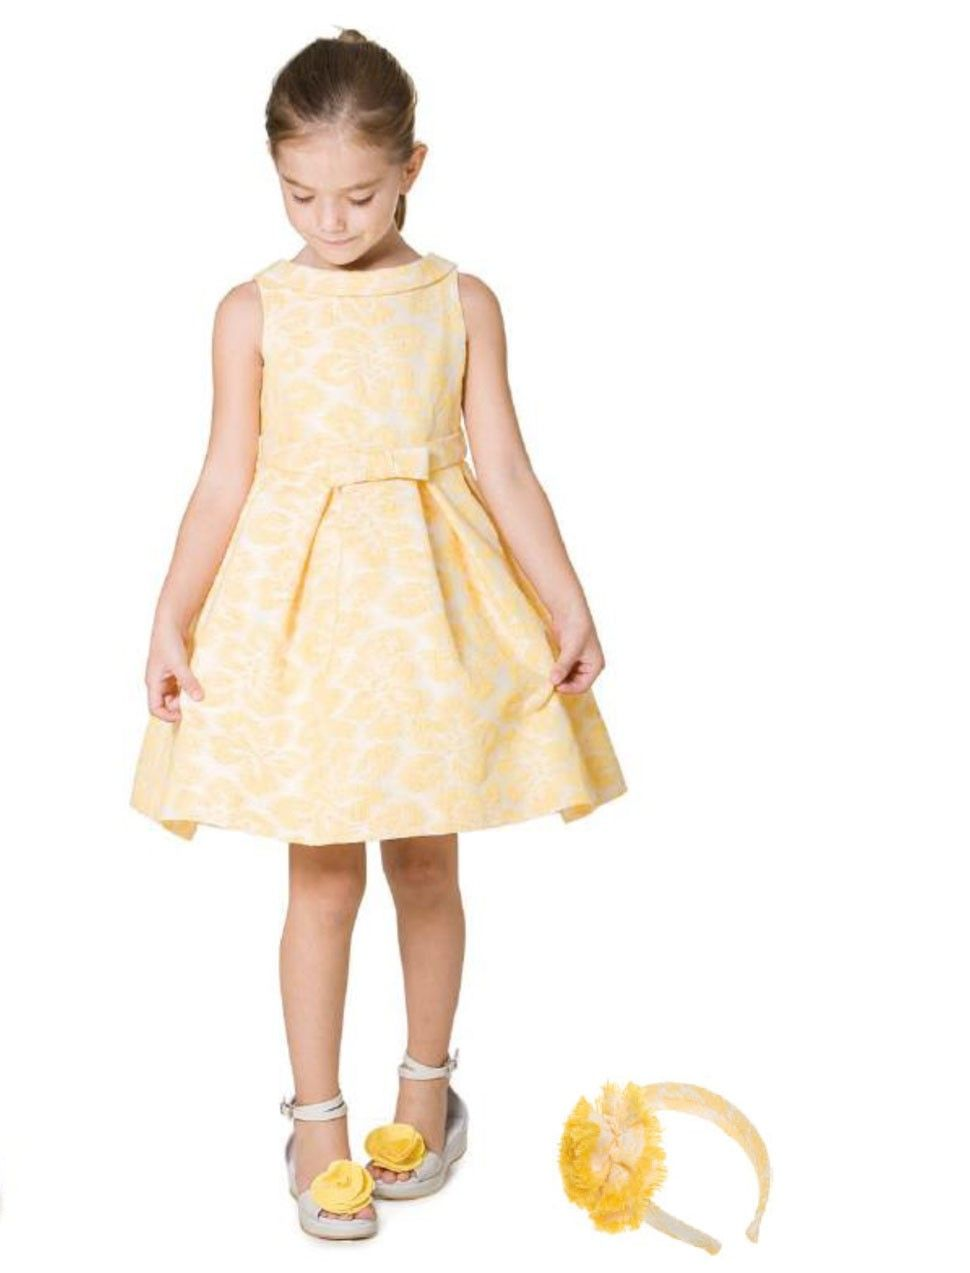 Yellow dress kids  The famous yellow princess dress  princes dres  Pinterest  Child